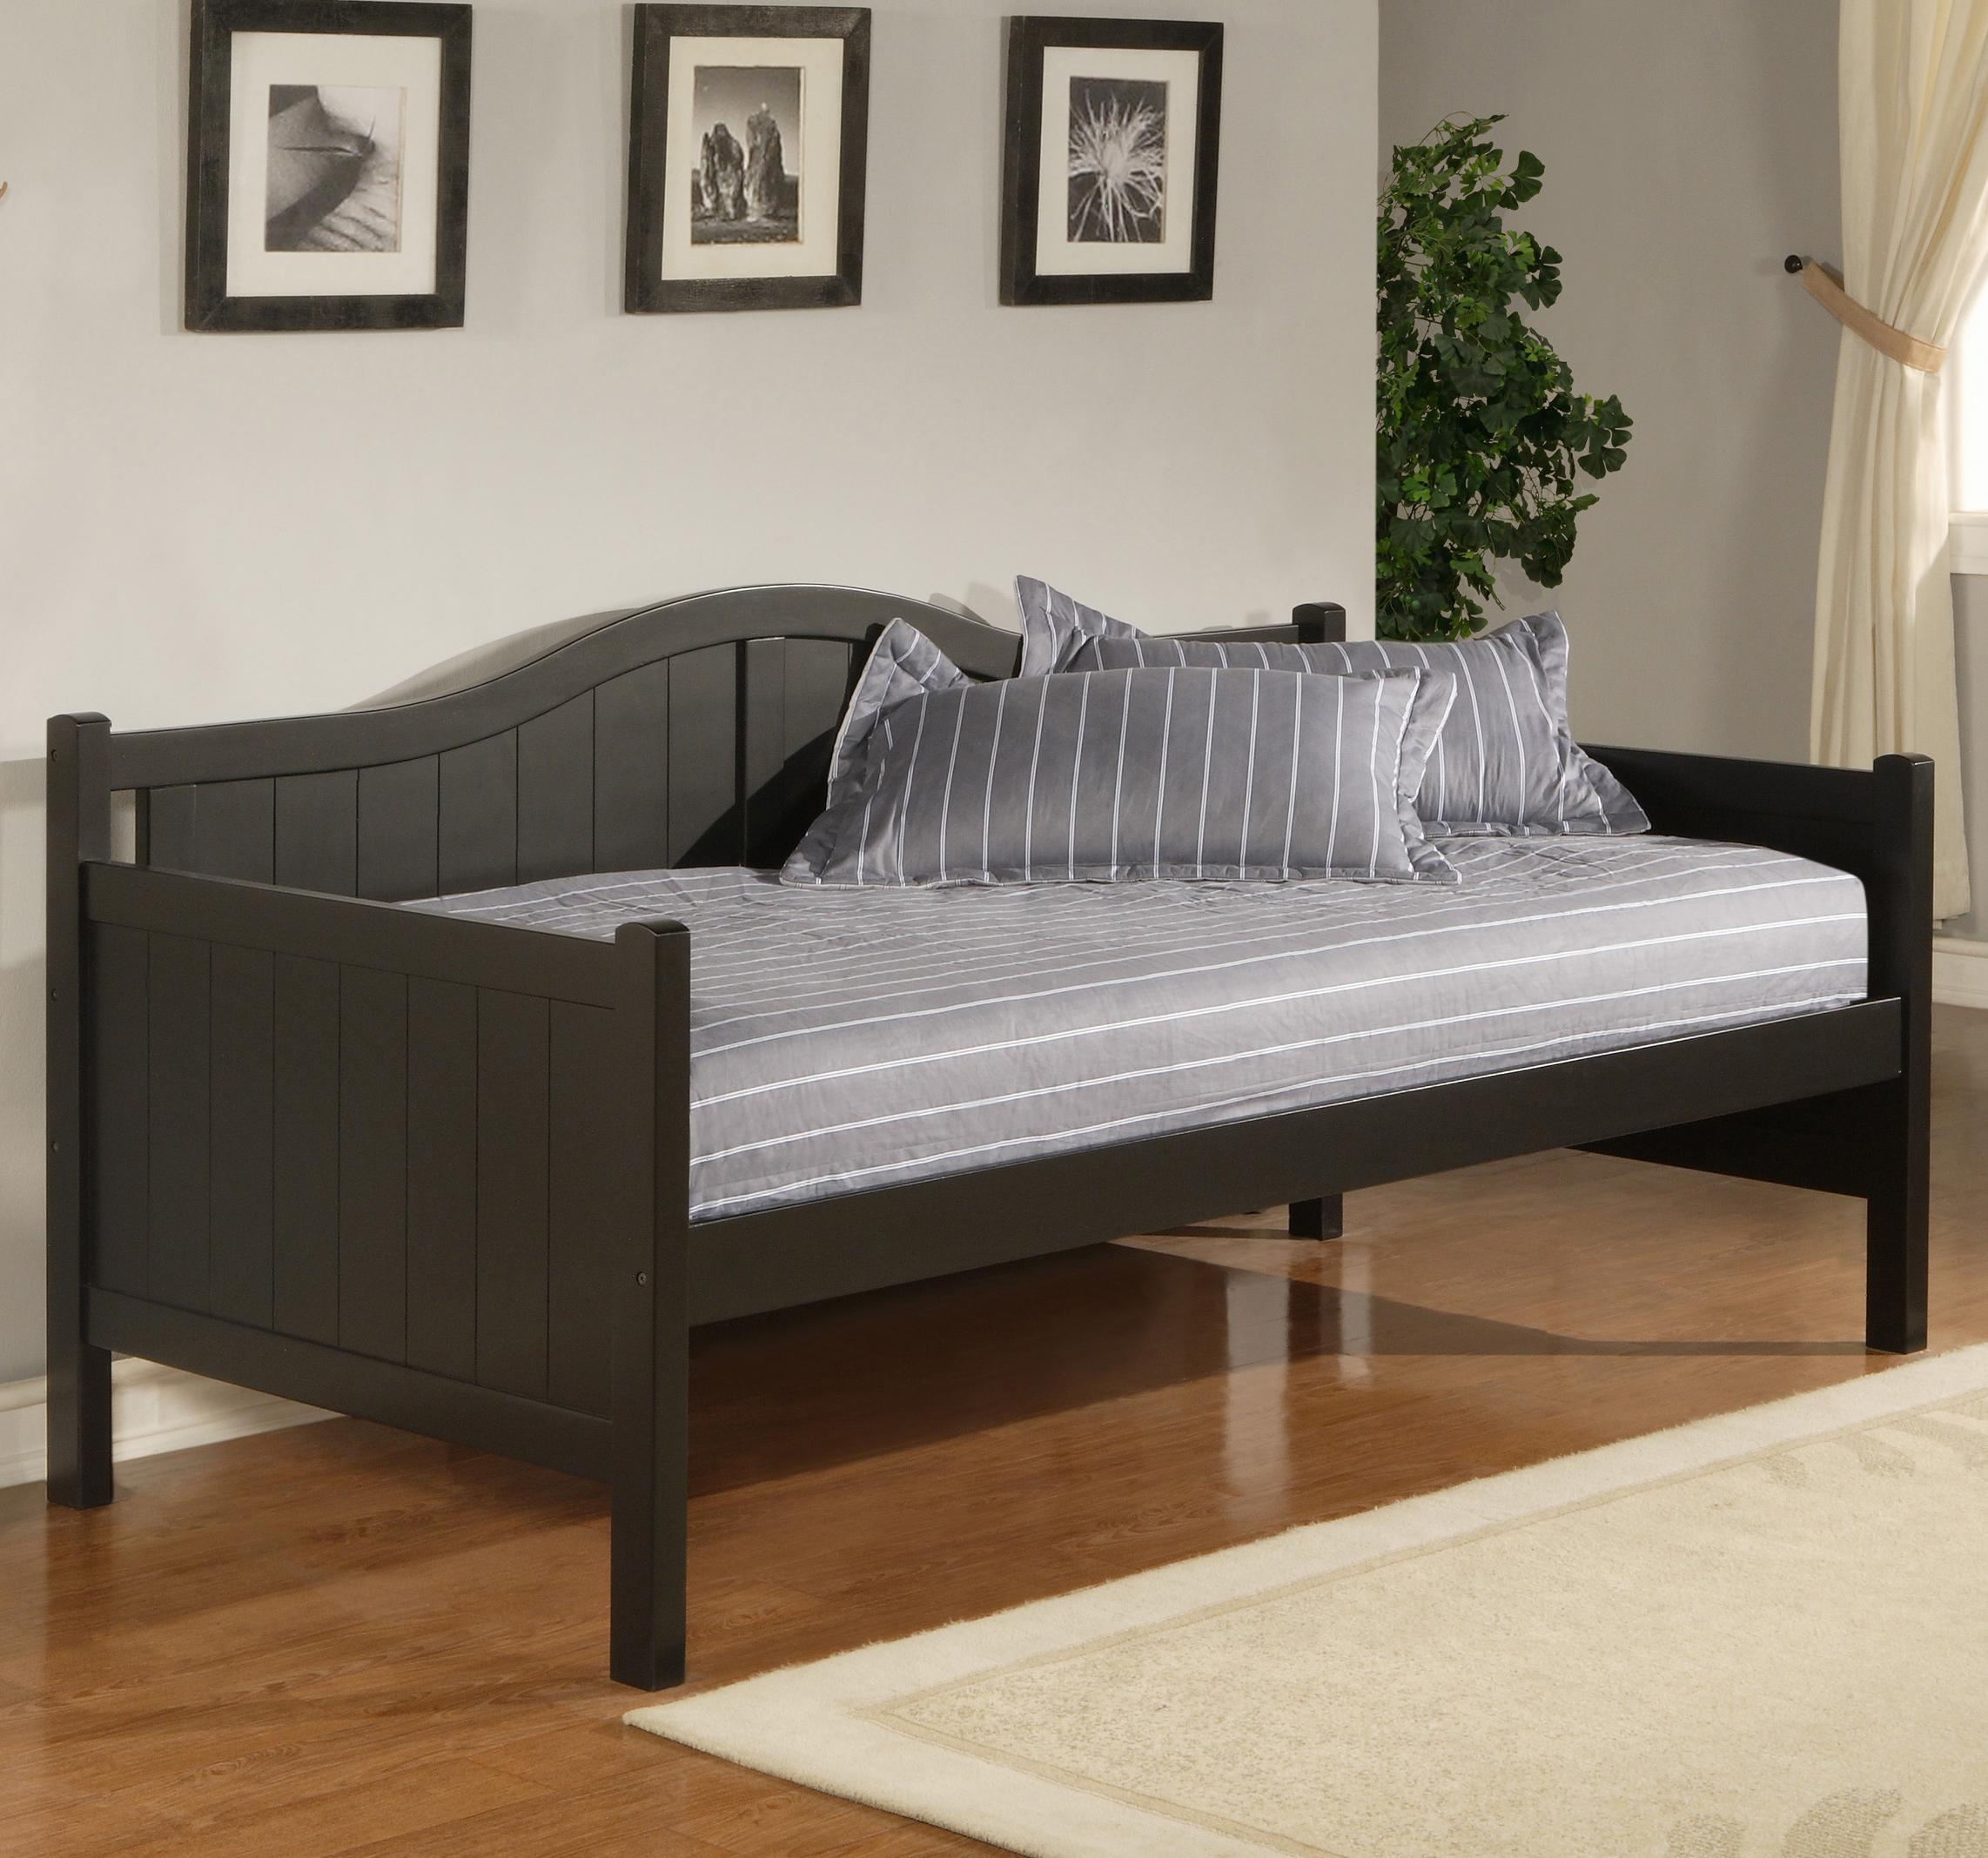 Hillsdale Daybeds Twin Staci Daybed - Item Number: 1572DB